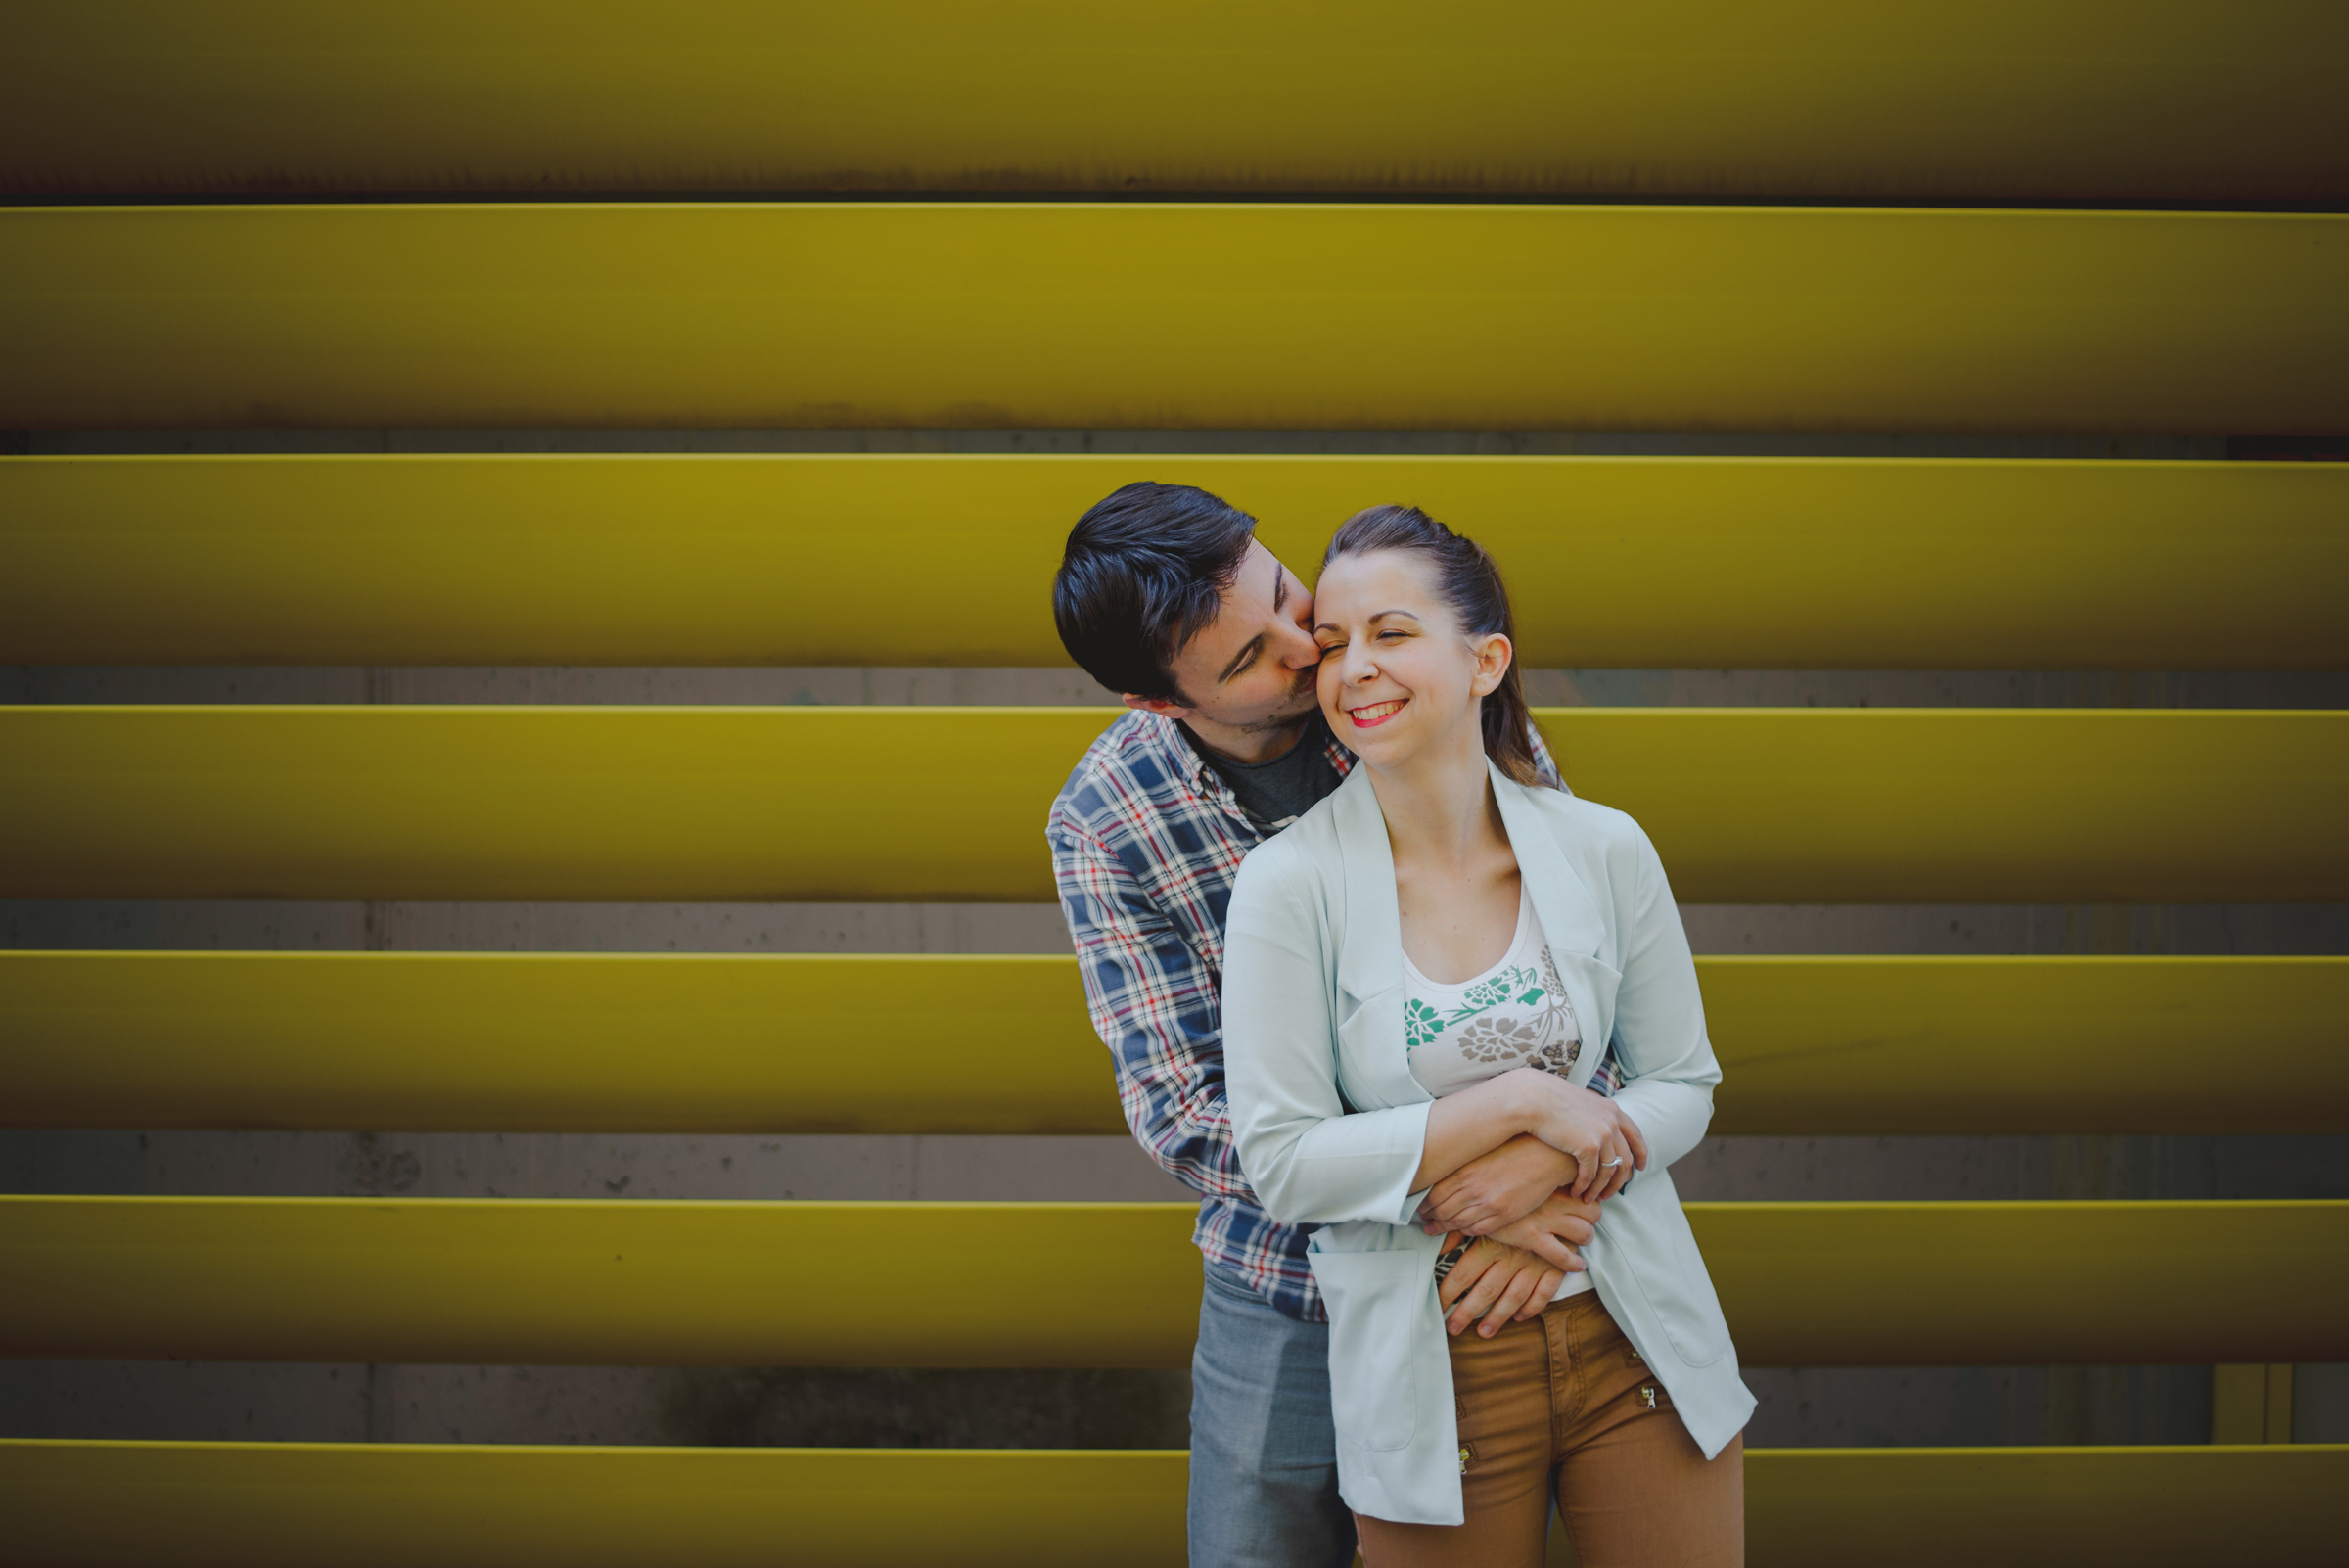 couple hugging and kissing in front of yellow fence, shot on medium format film, mamiya 645 pro tl and sekor 45 f2.8